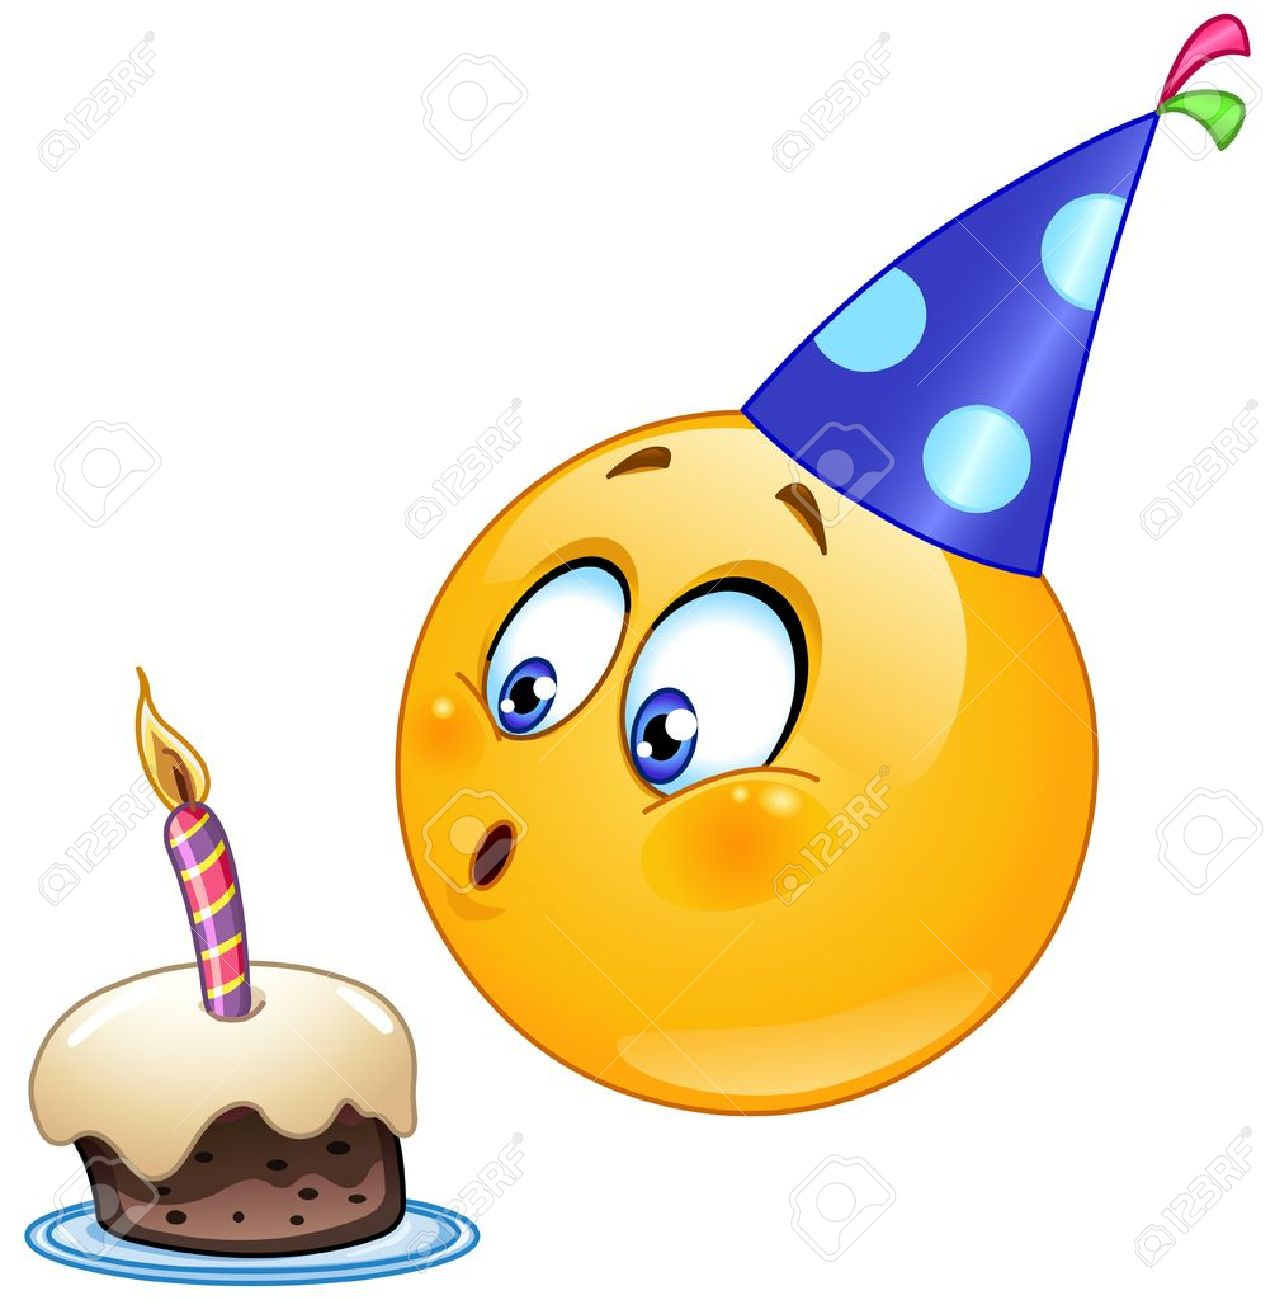 Birthday Emoticon Blowing Cake Candle Stock Vector